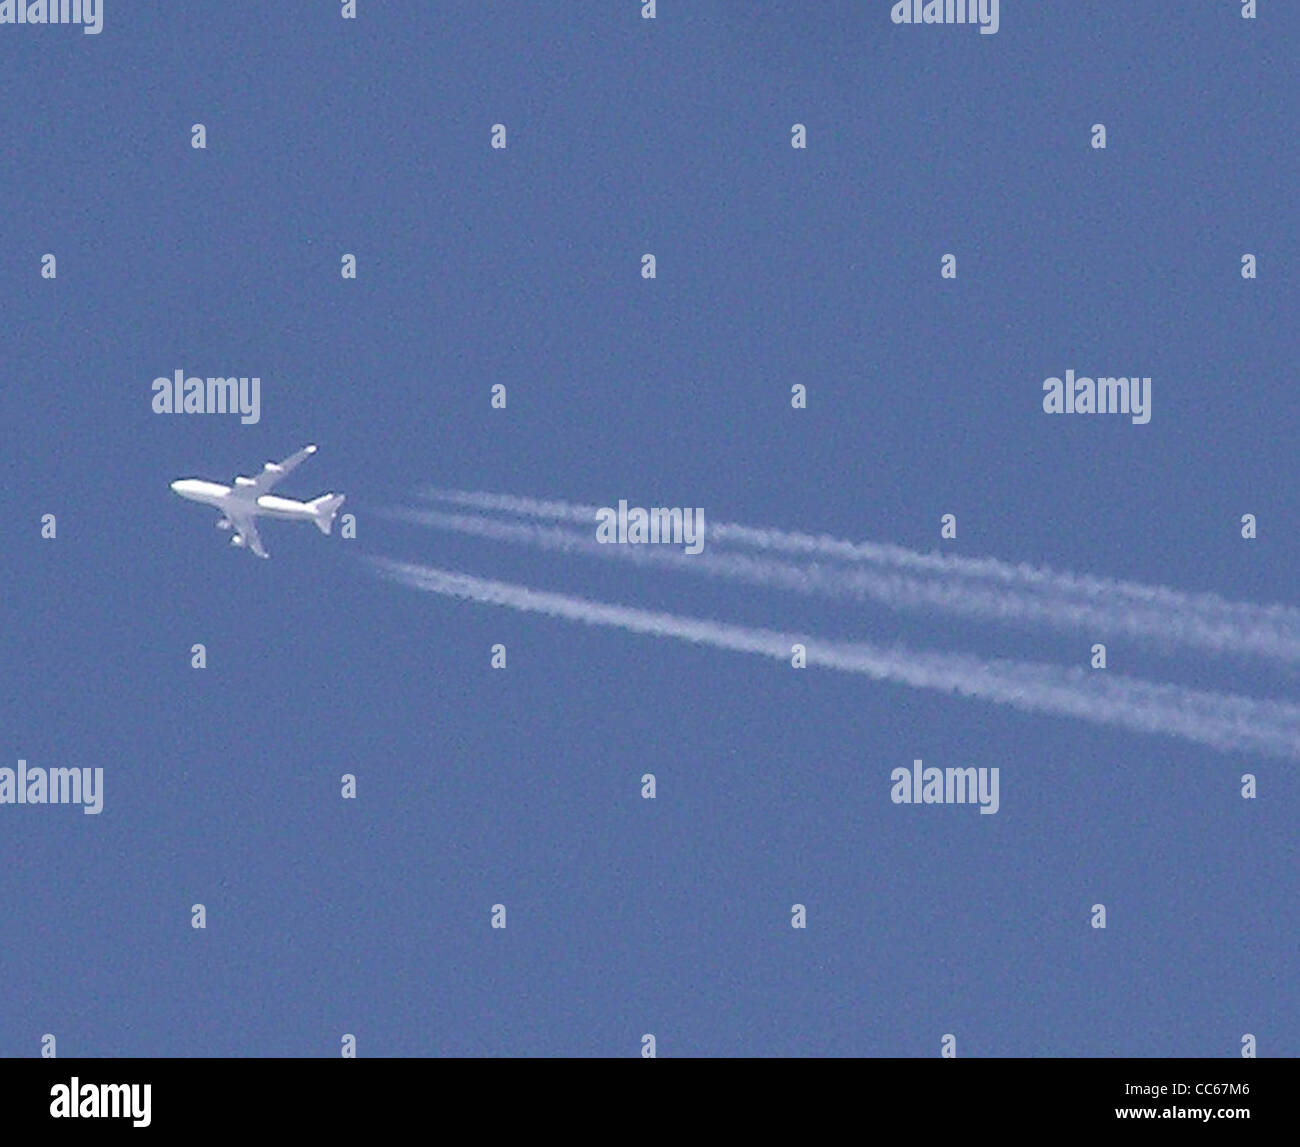 Aircraft in cruise at roughly 35,000 feet above Bristol, England. - Stock Image